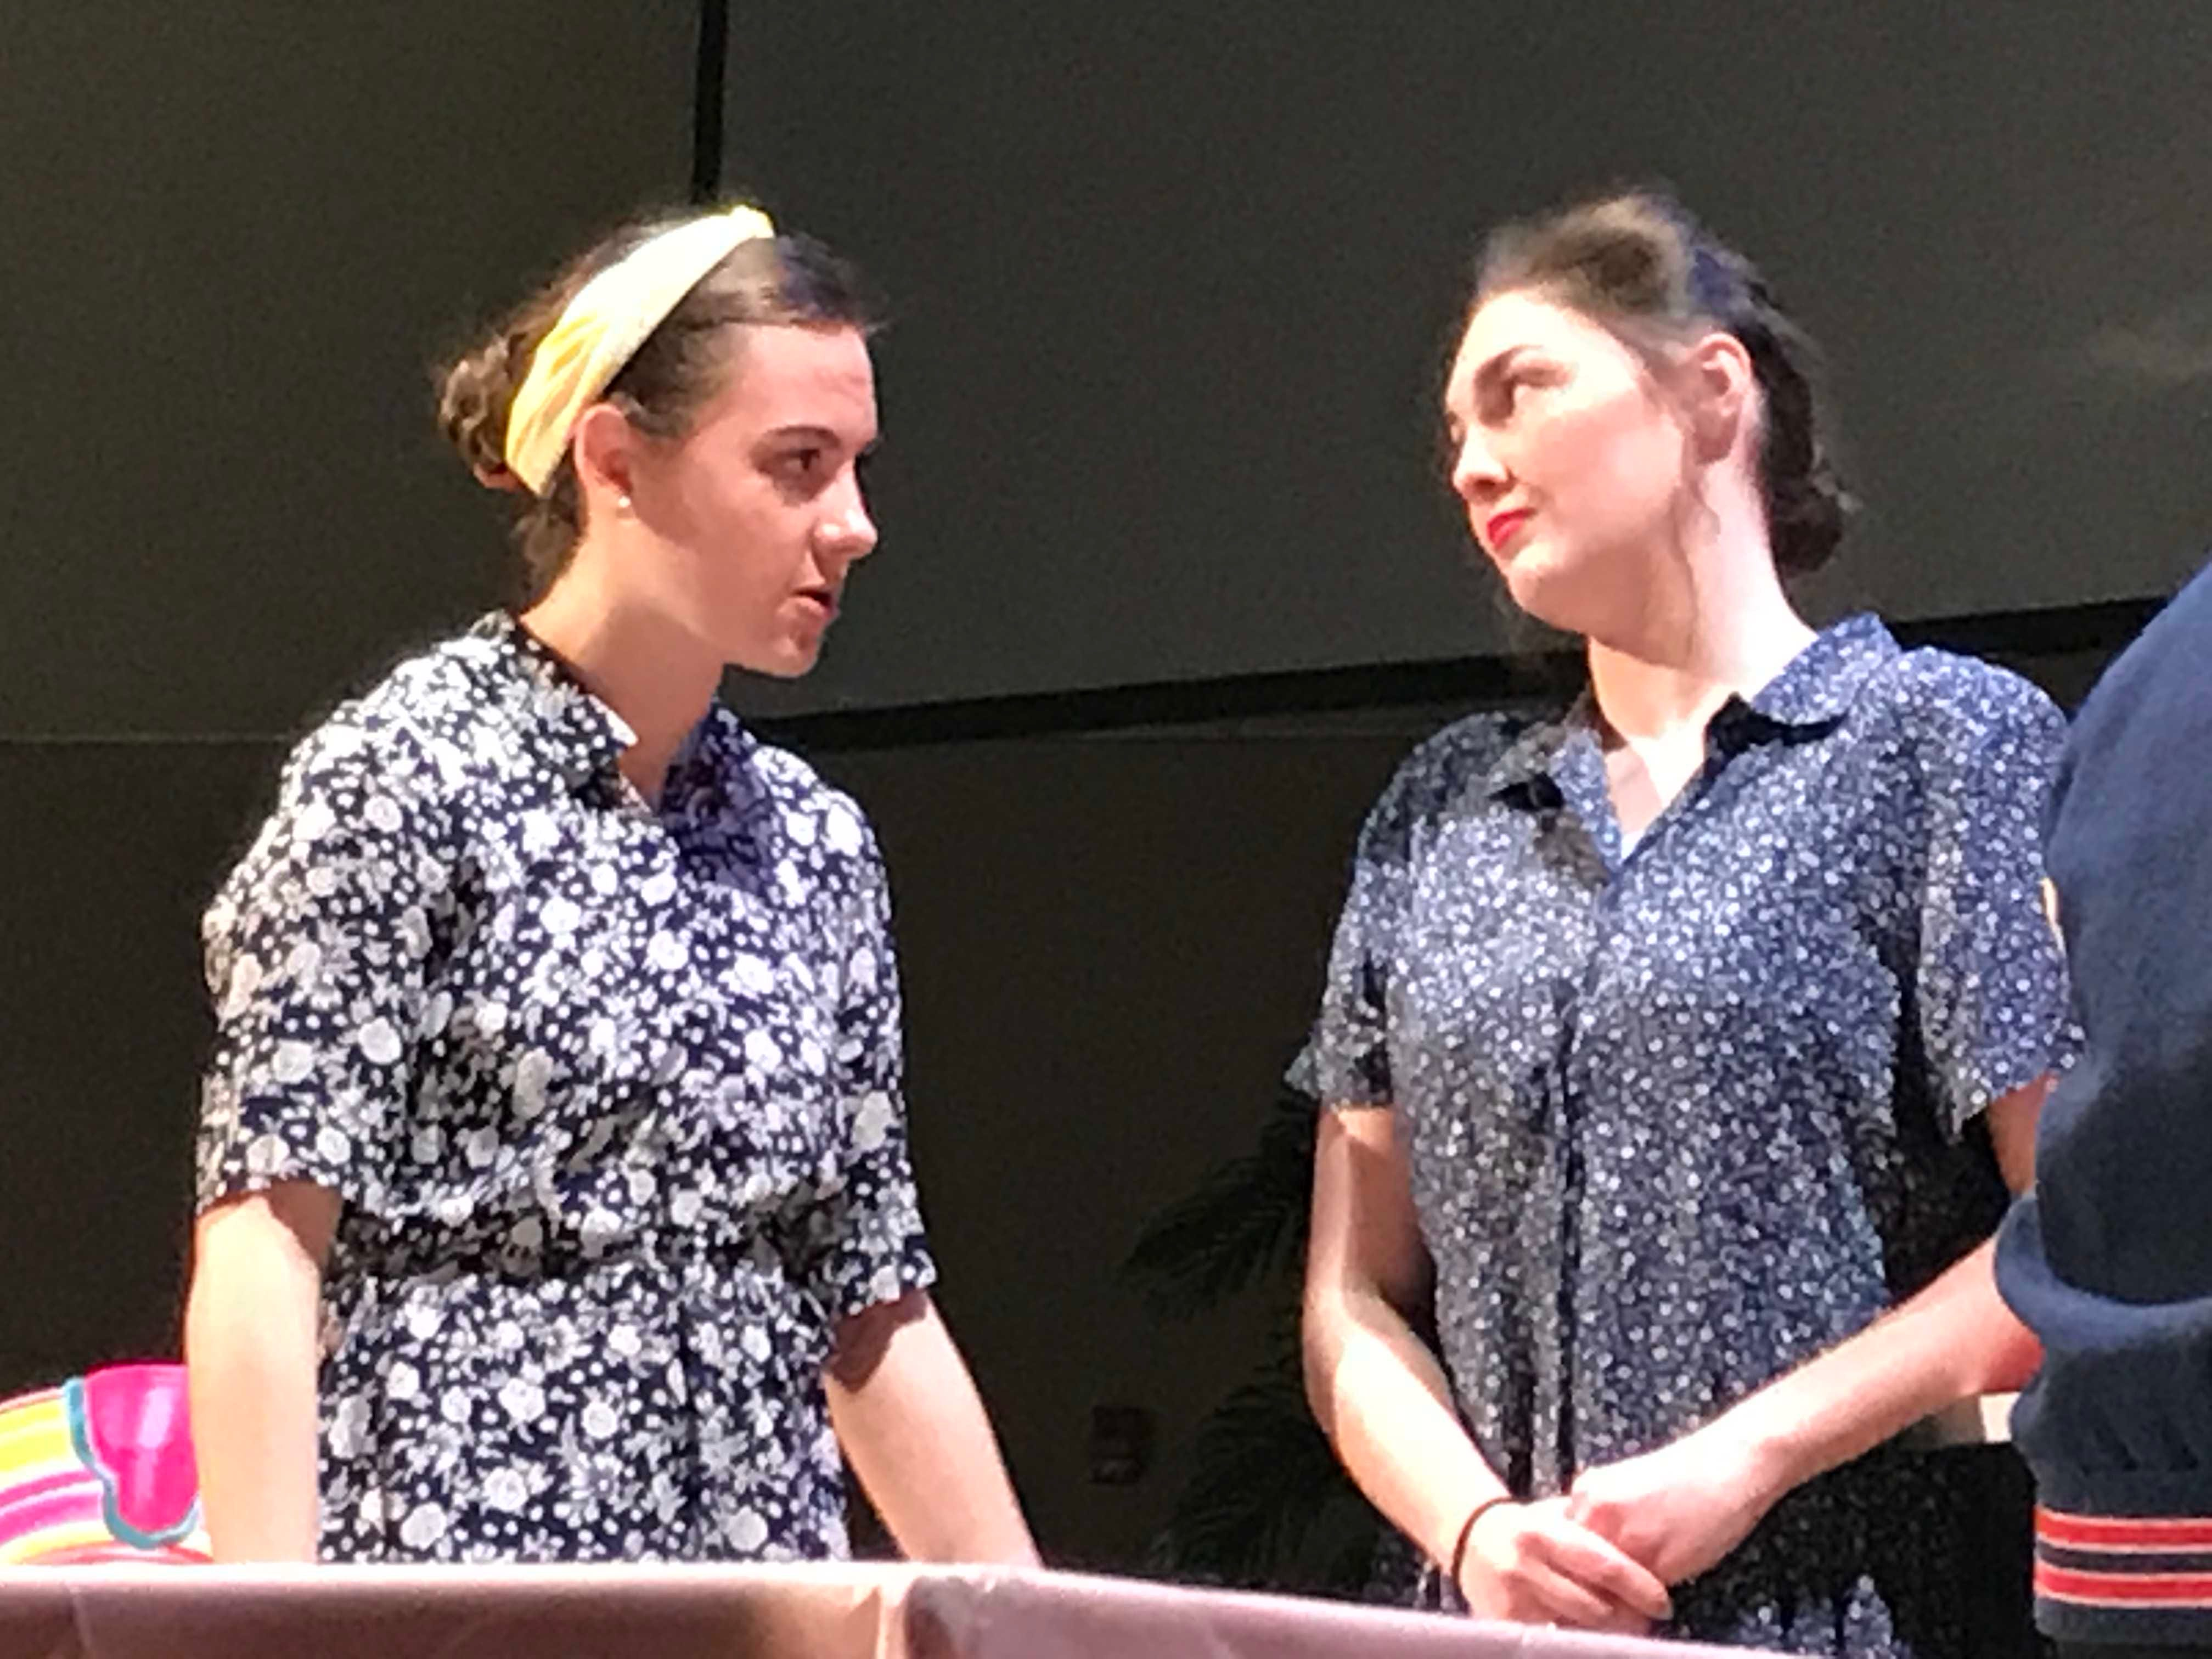 """Cumberland Valley Christian School students Gracey Poe, left, as """"Norma Dreadful"""" and Betheny Snyder, as """"Ginger Vitus"""" talk during a scene of """"Murder at the Malt Shop"""" during a dress rehearsal on Friday afternoon. The public is invited to see the play at 7 p.m. tonight at the Open Door Church, which is located in the Cumberland Valley Christian School complex, at 600 Miller St., Chambersburg."""